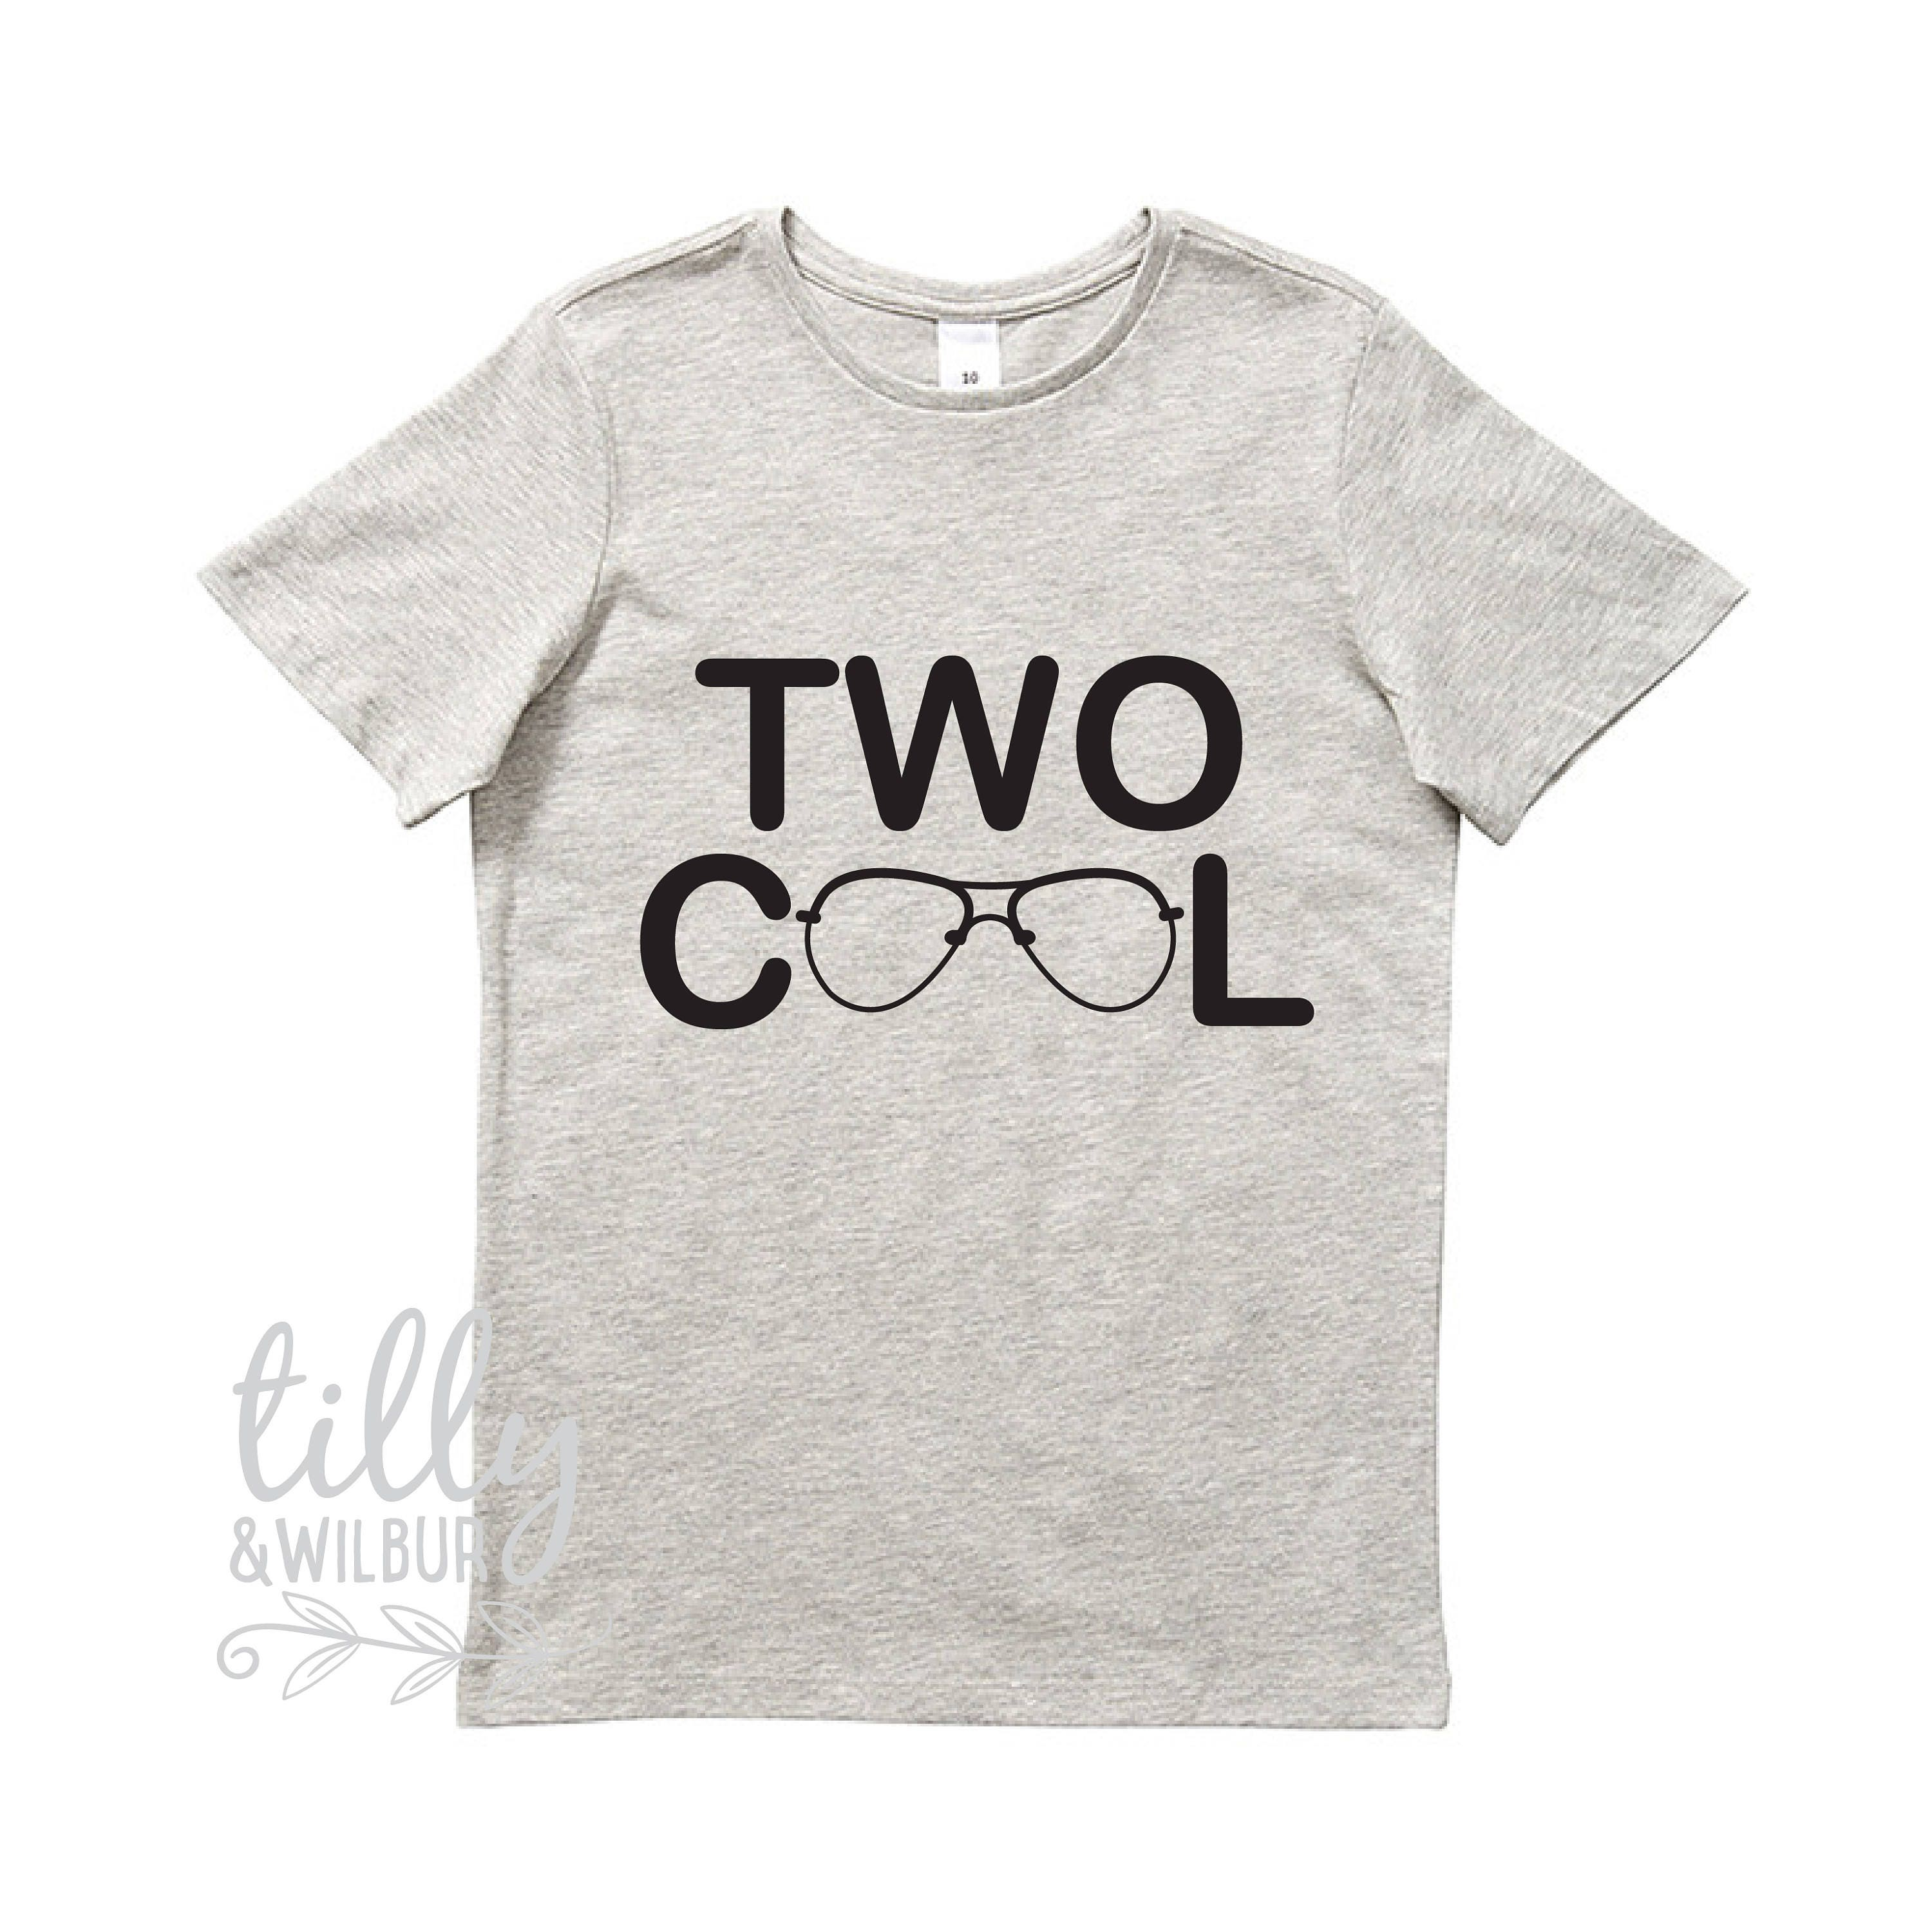 Two Cool Boys Birthday T Shirt 2 Year Old Boy Second Gift 2nd Present Outfit